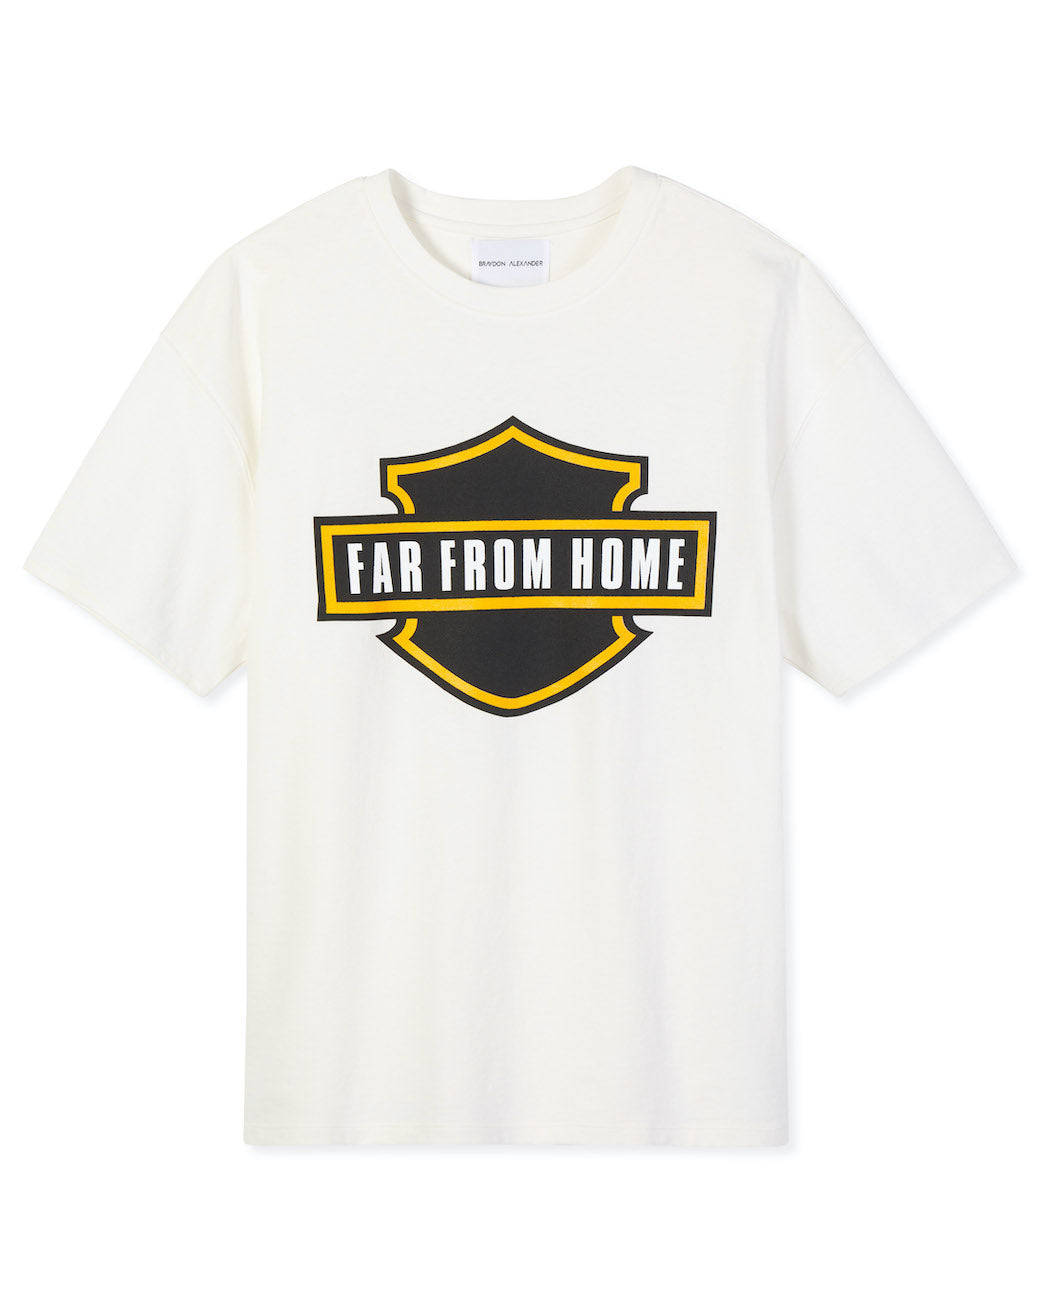 'FAR FROM HOME' GRAPHIC TEE